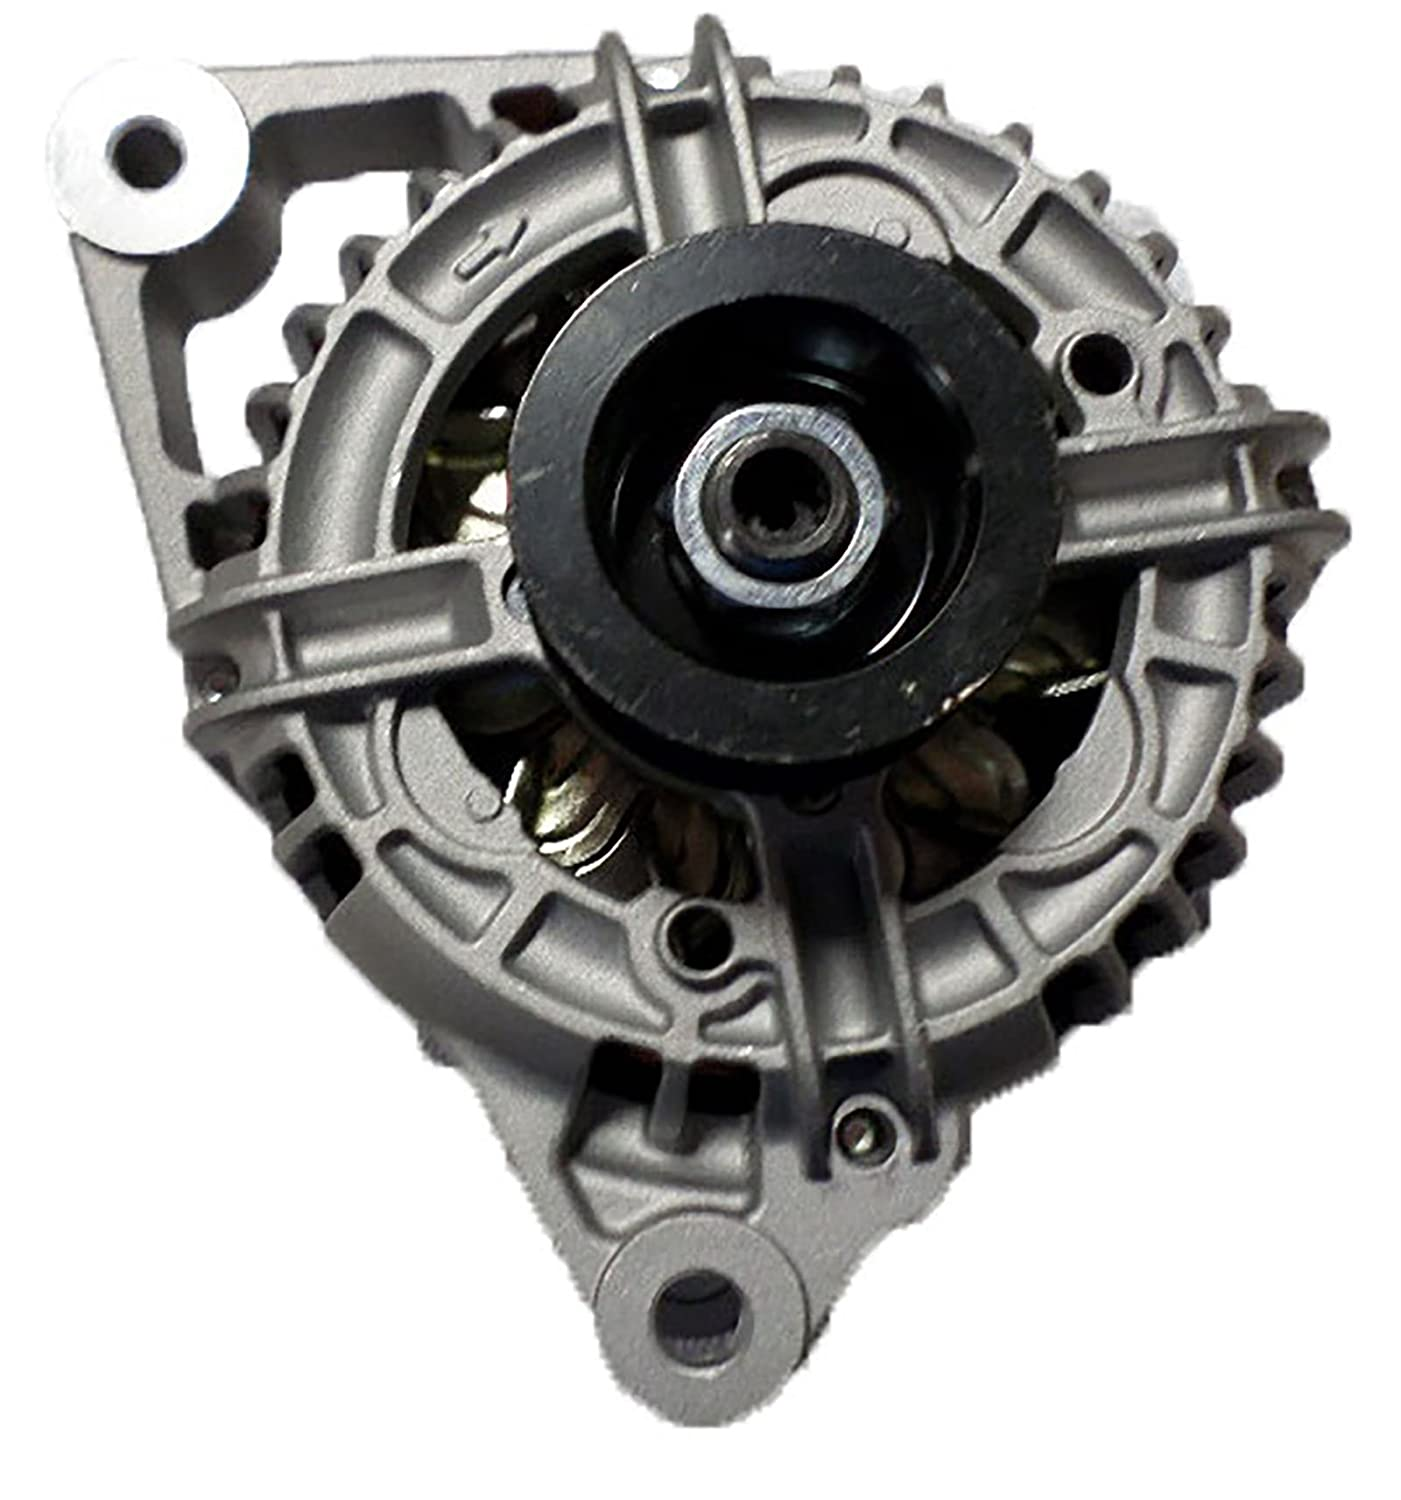 Amazon.com: Alternator For Porsche 911 (GT3 RS 4.0 Coupe 4.0L, GT3 Coupe 2-Door 3.8L, Carrera 4/4S, GT2 Turbocharged, Targa 4/4S Convertible, Turbo Coupe ...